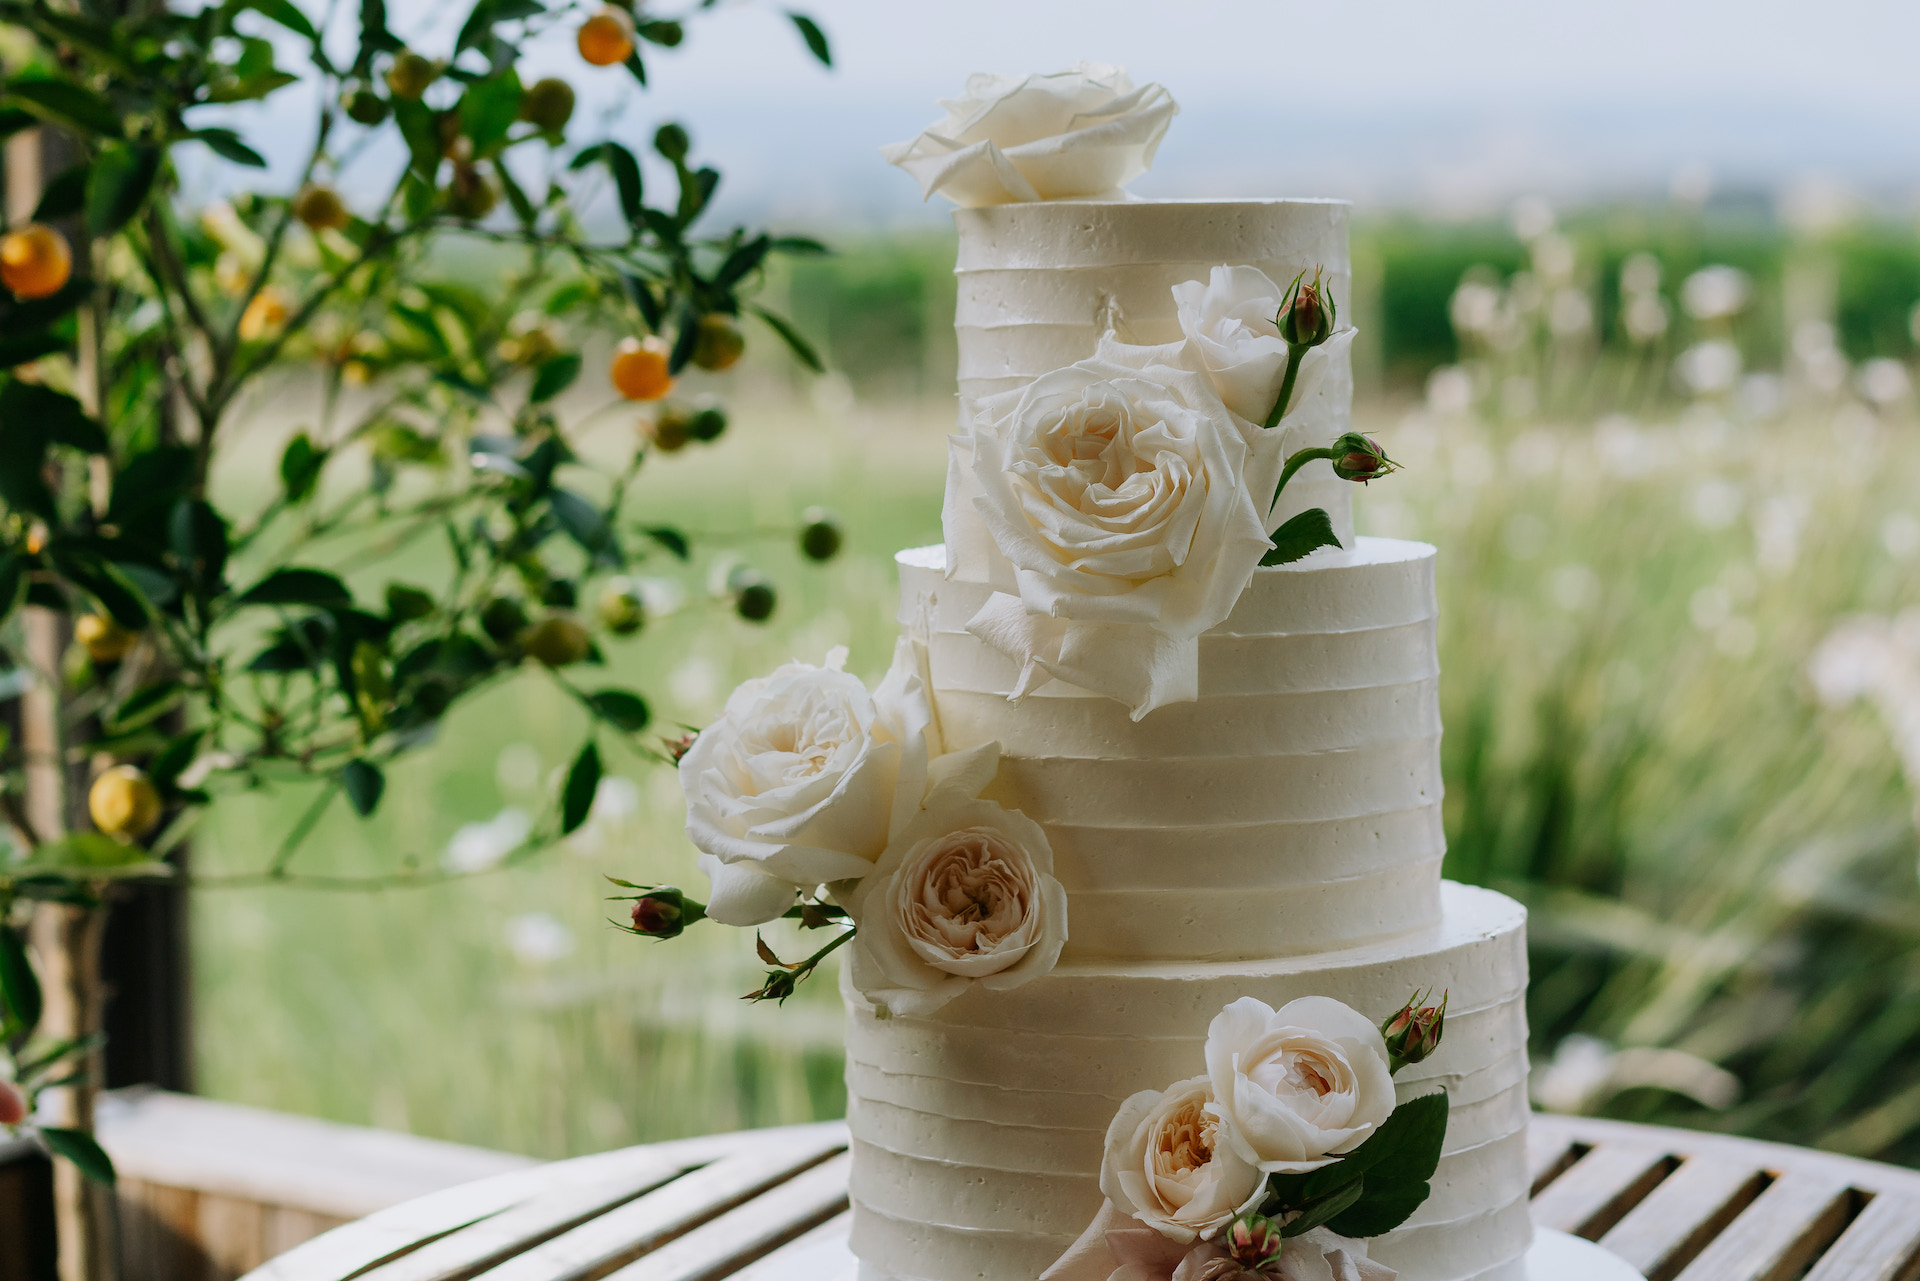 Stones of the Yarra Valley modern wedding cake with neutral wedding flowers by Sassafras Flower Design.